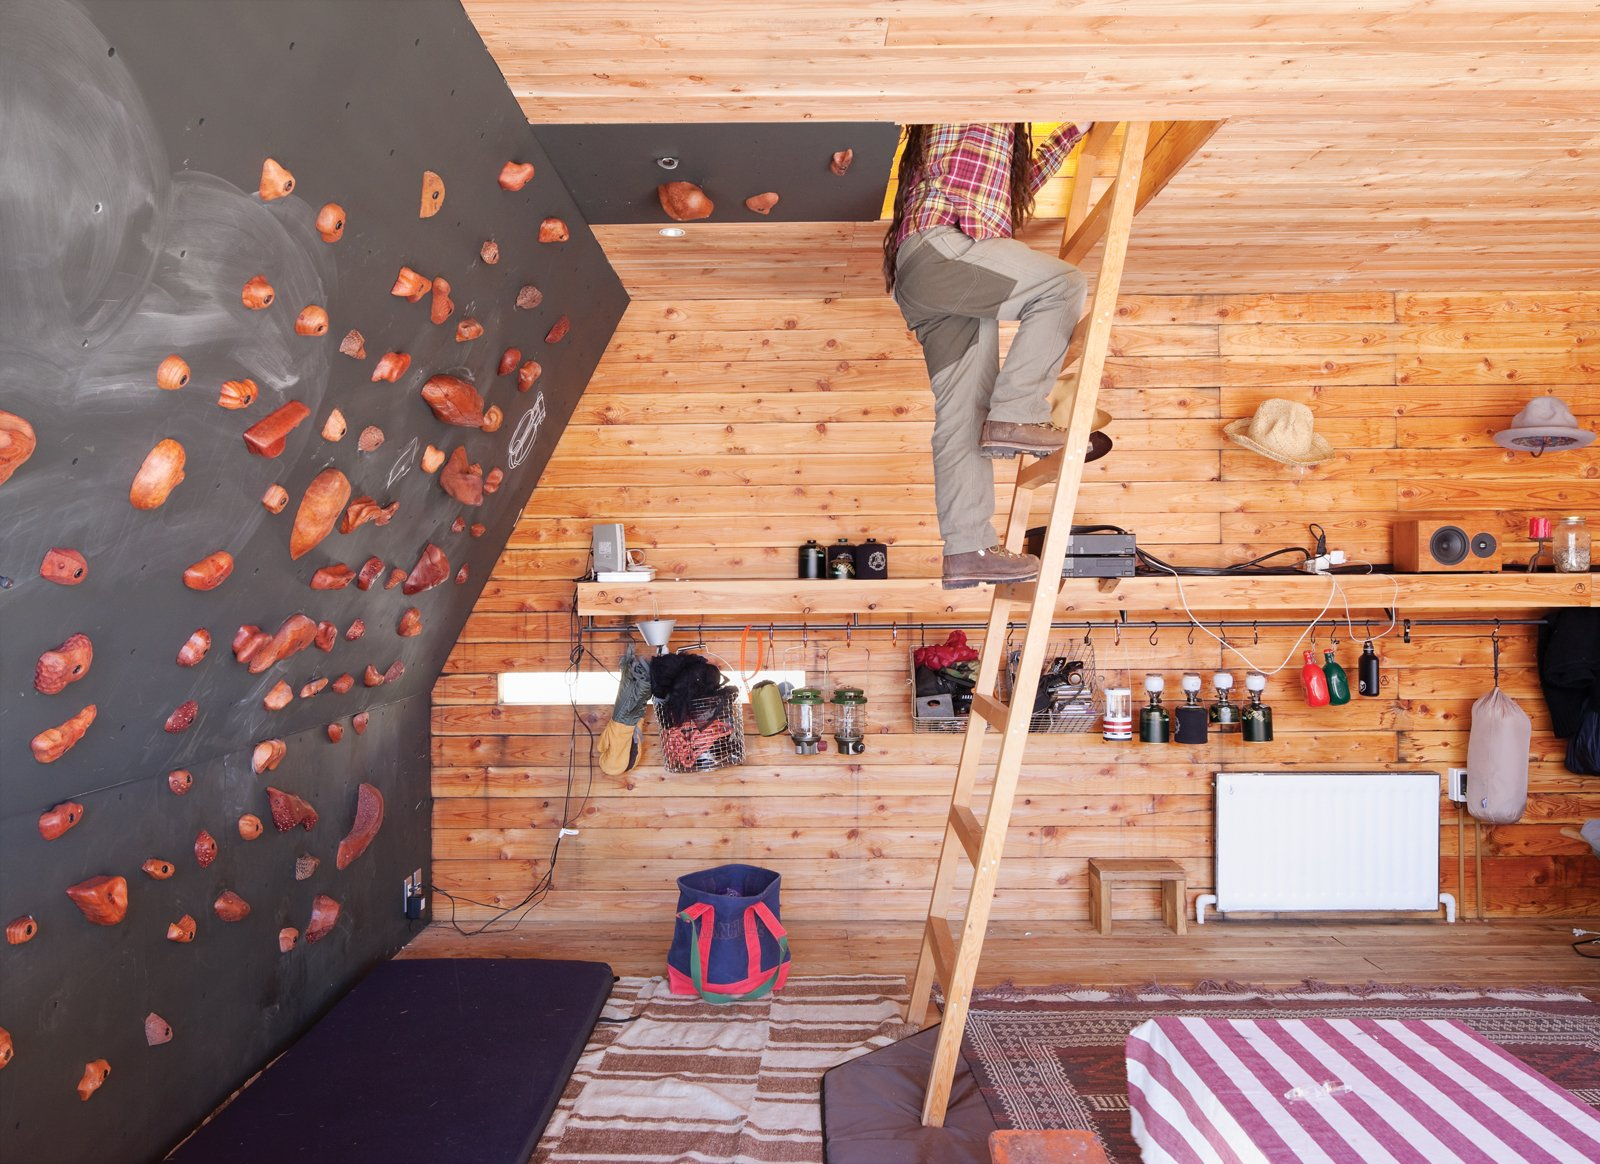 The rooftop tent can be accessed from the interior via a wooden ladder or—for the more athletic—via a series of wall-mounted climbing holds, made by Vock and carved from persimmon-tinted hardwood. Tagged: Living Room and Shelves.  Woodgrain by Jenny Xie from A Platform for Living